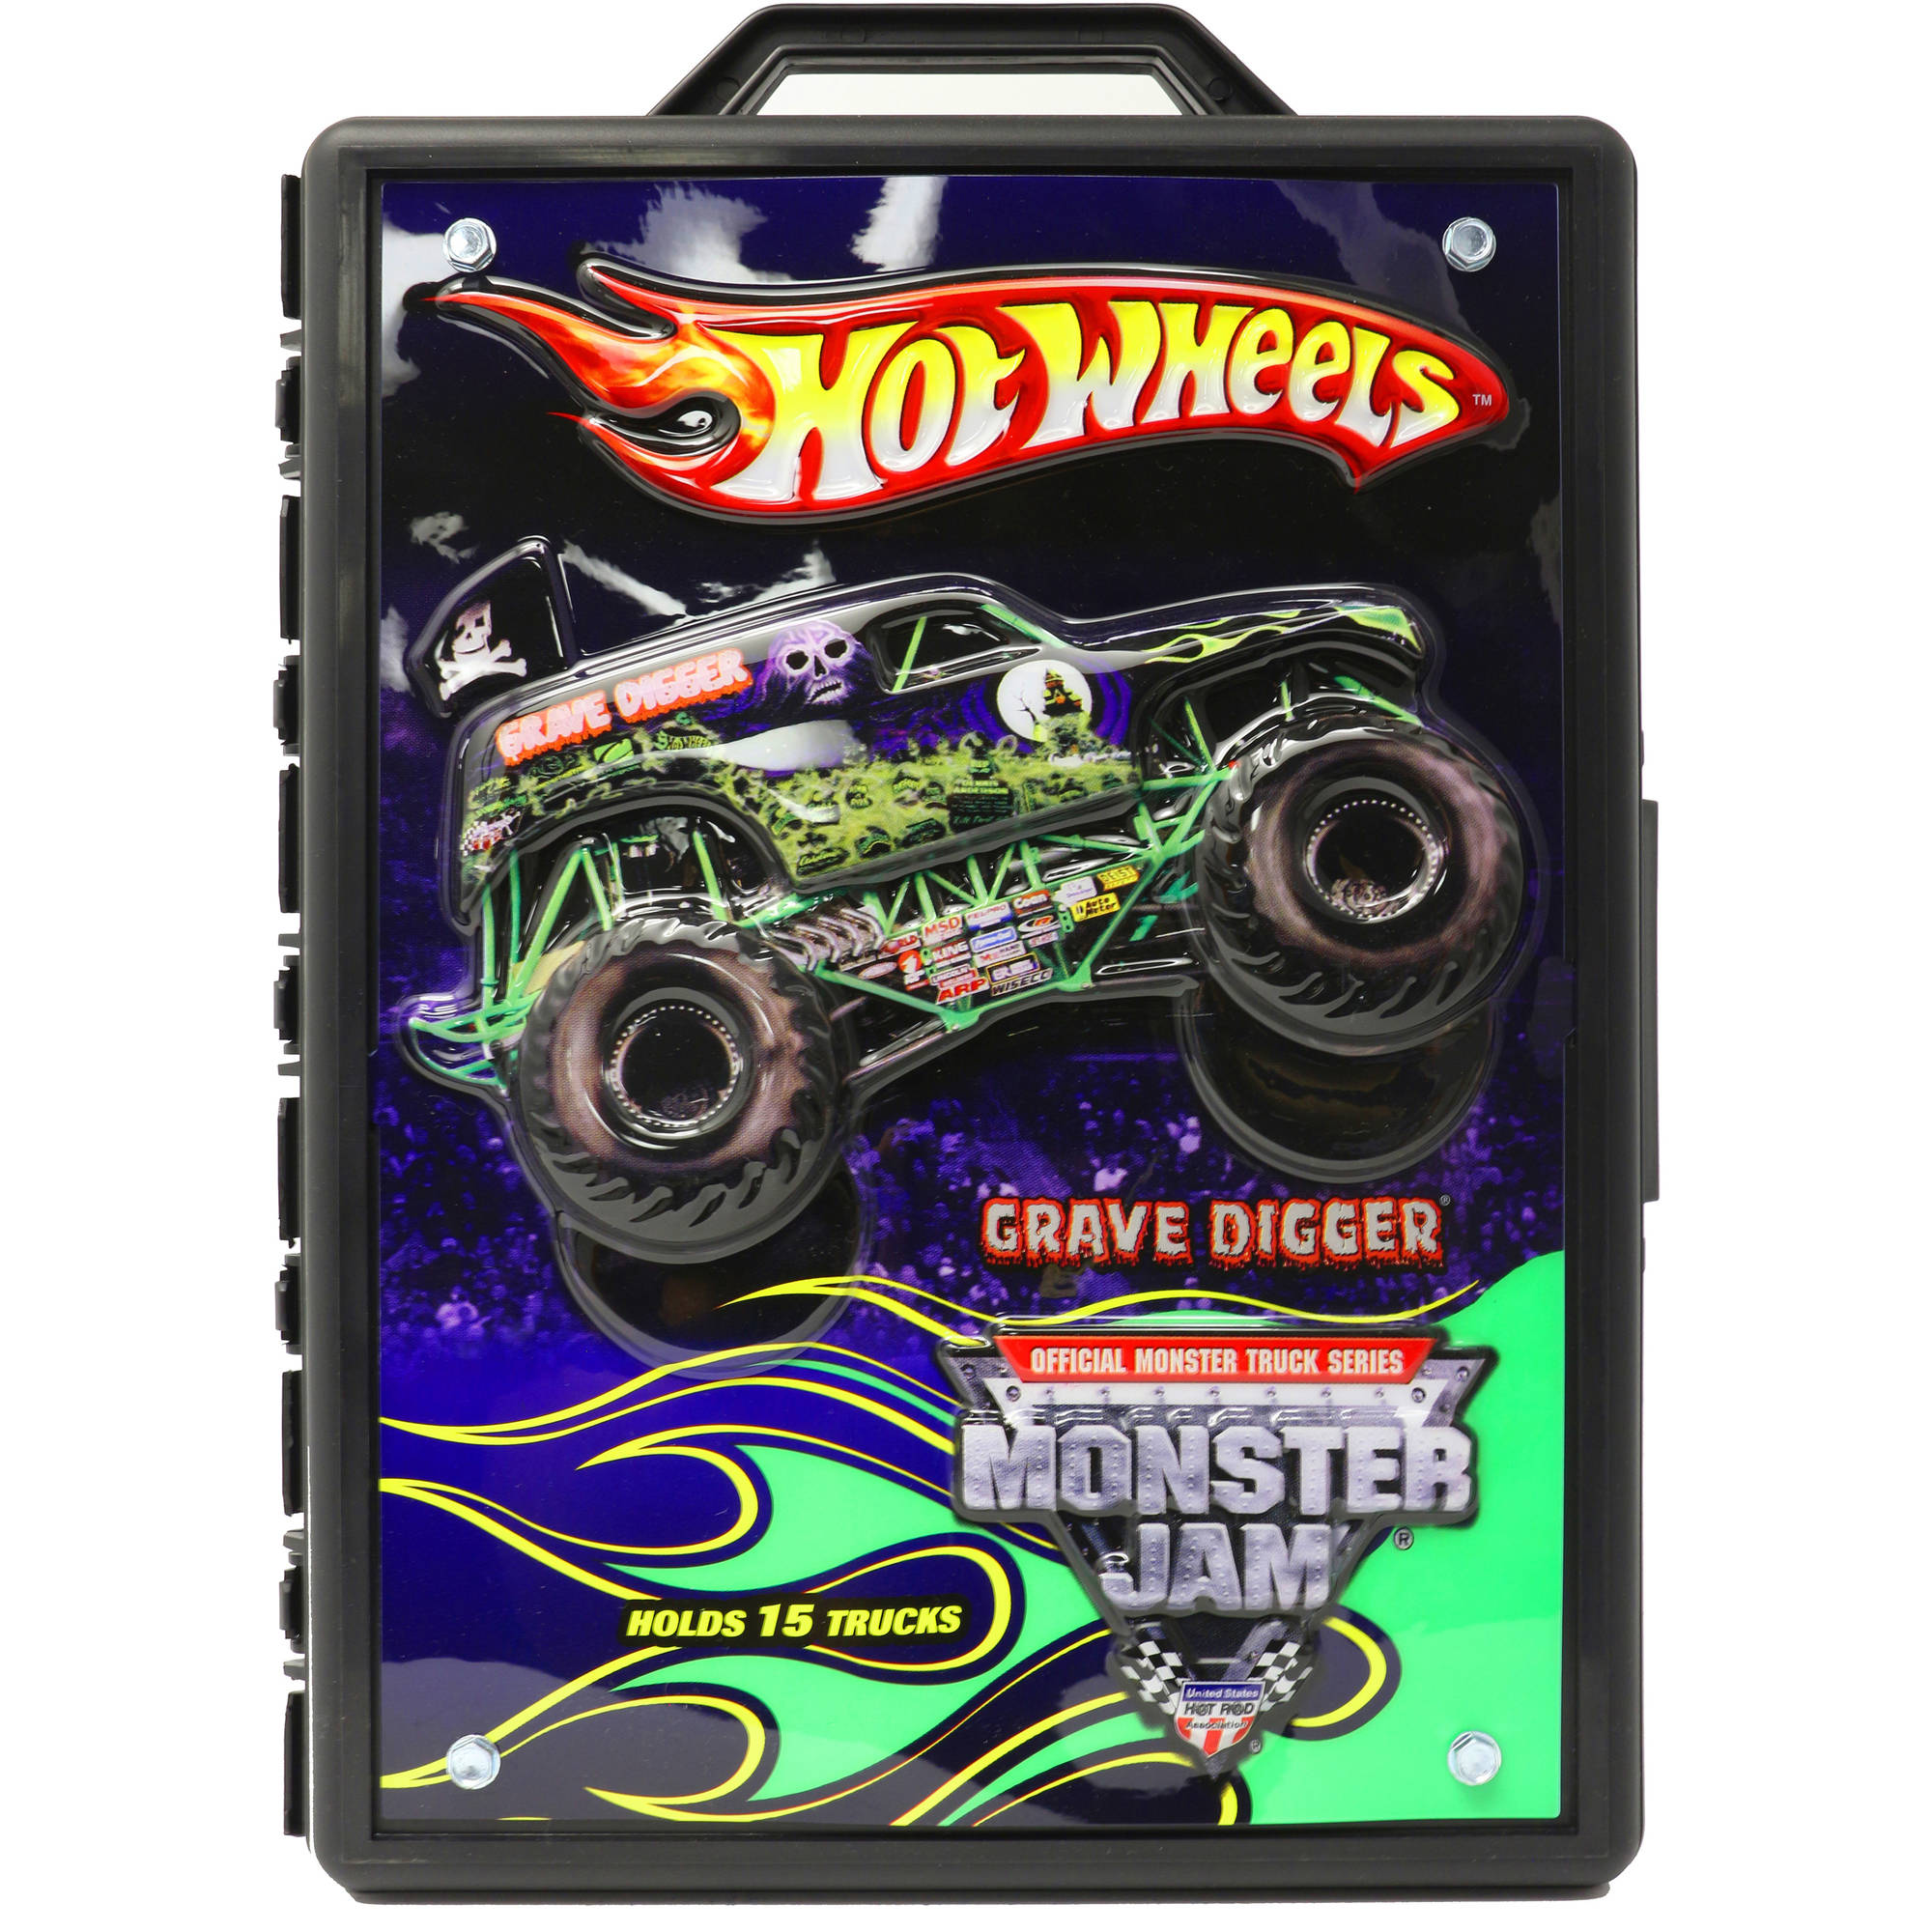 Hot Wheels Monster Jam Case by Tara Toy Corporation